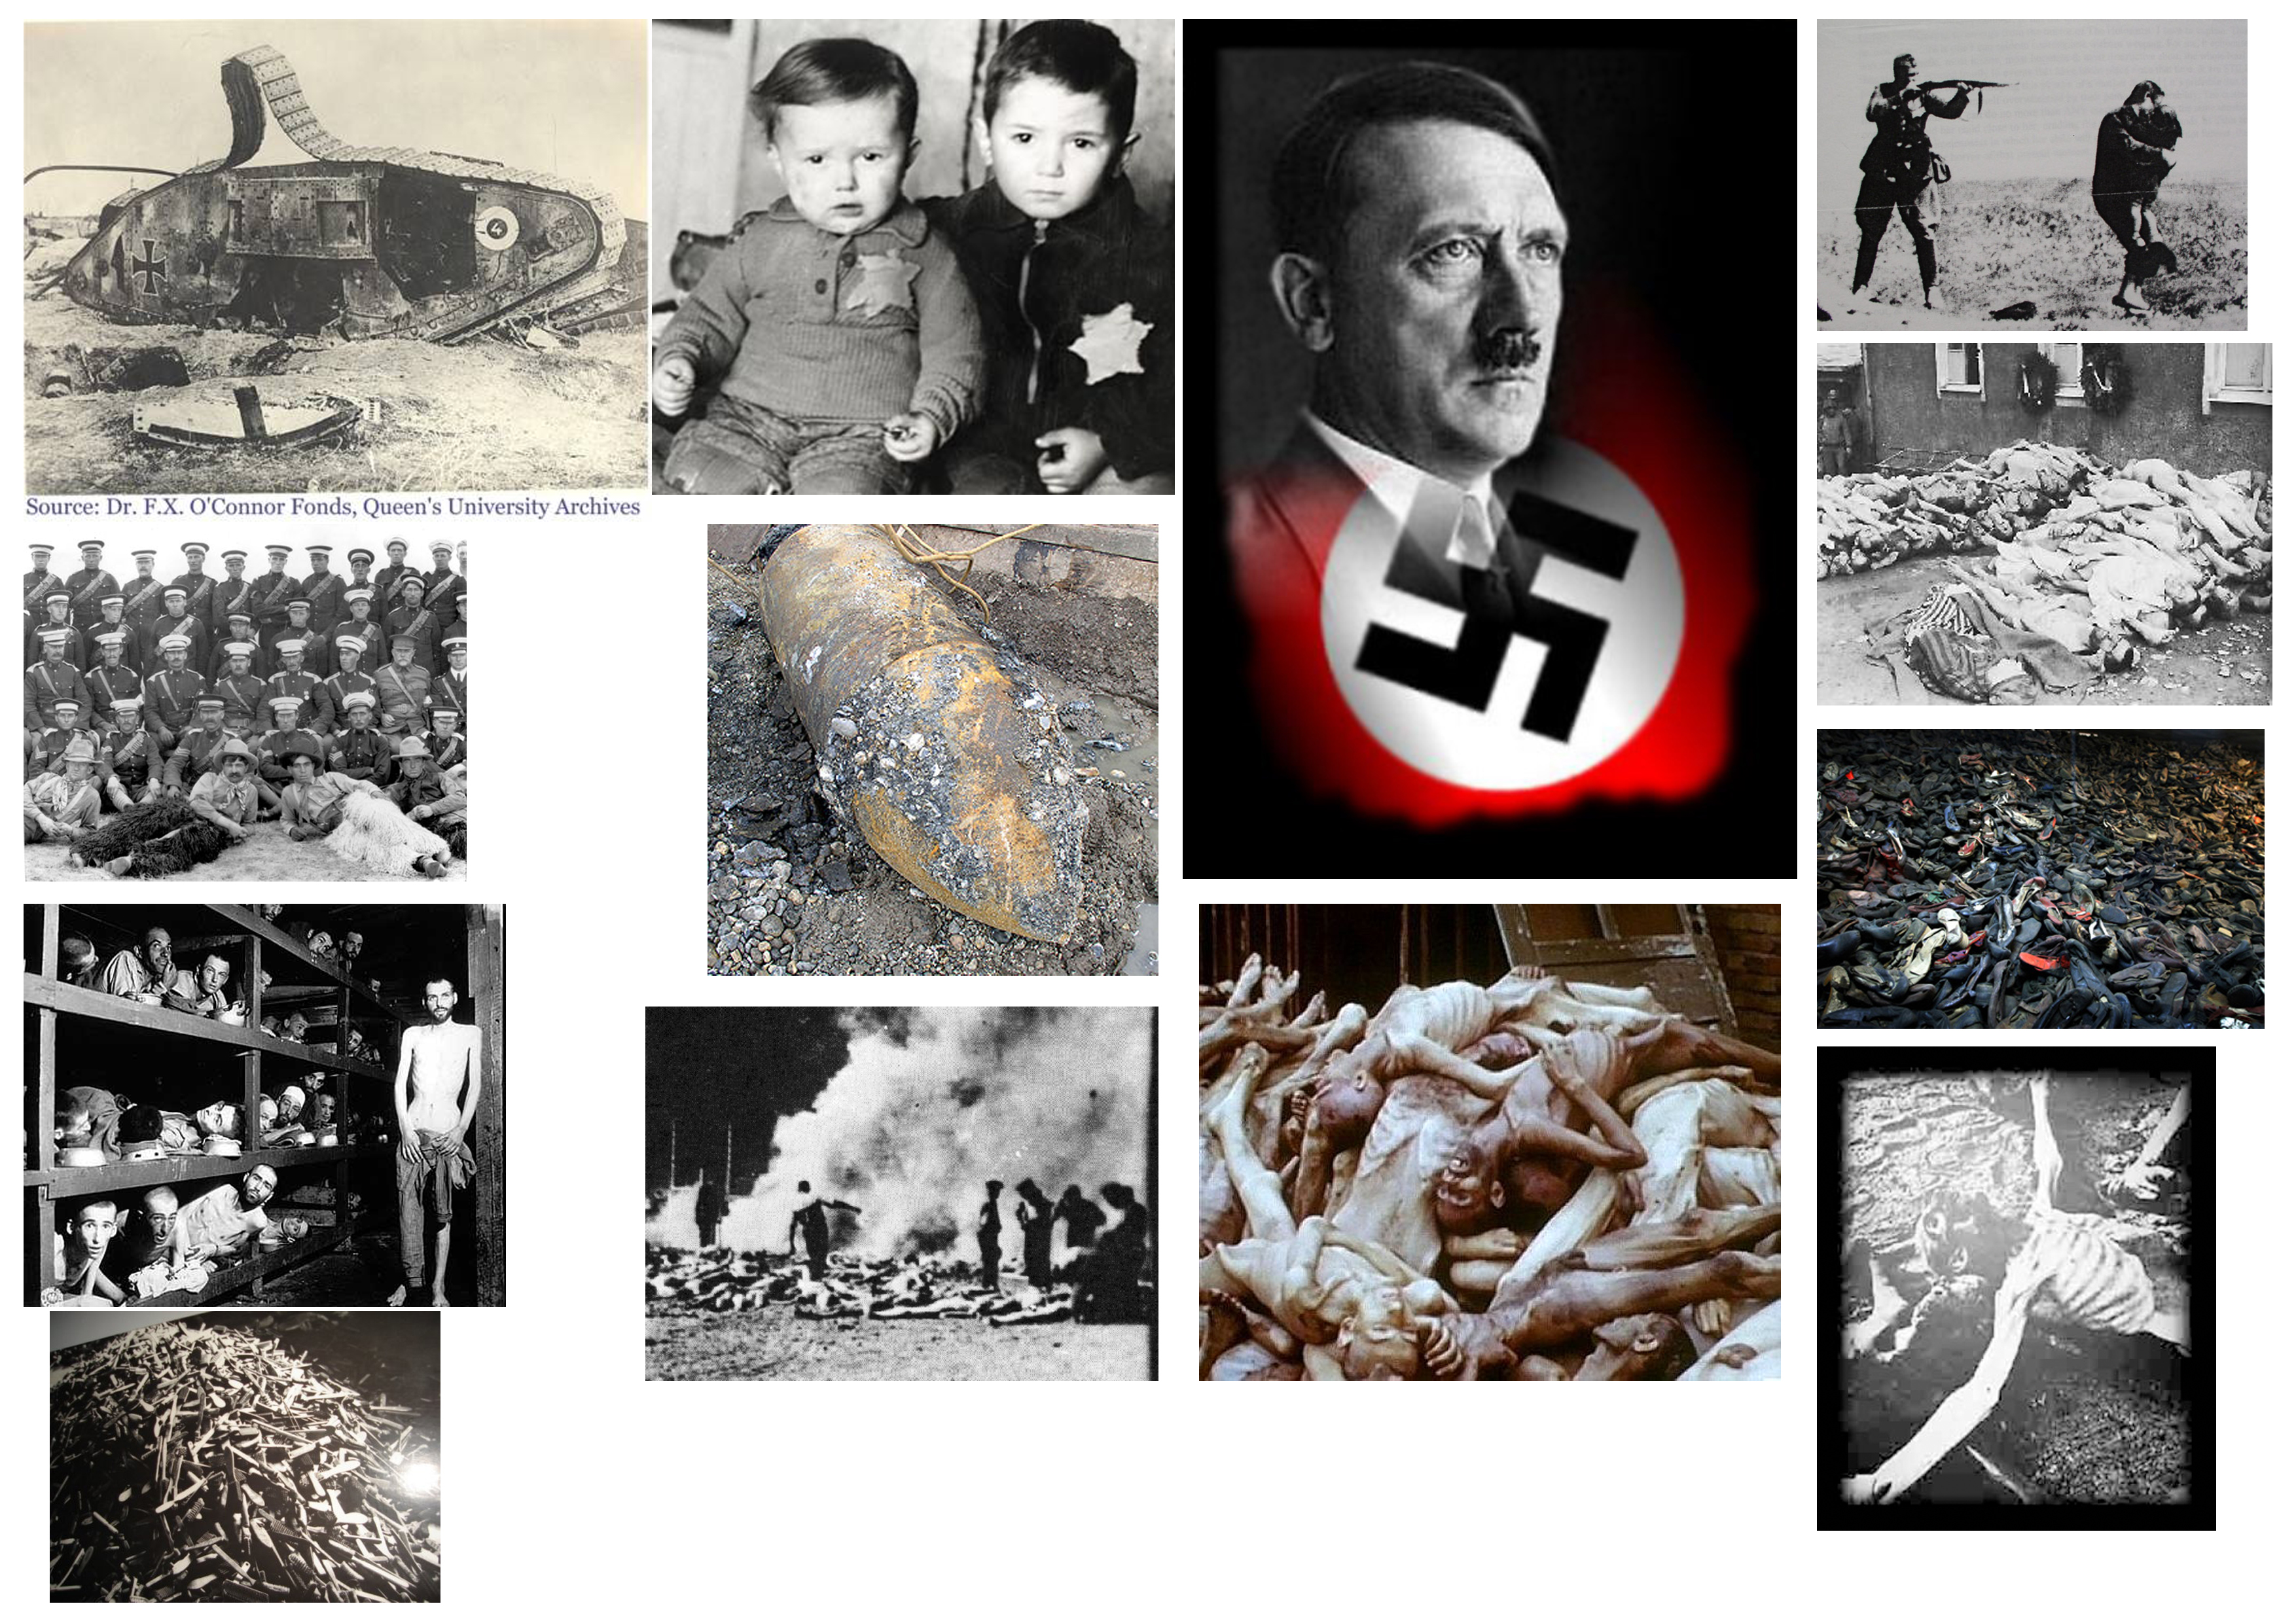 understanding hitlers obsessive ideas about the jews Hitlers vätergeneration: die ursprünge des nationalsozialismus in  and obsessive anticlericalism  of hitler's own ideas in bavaria hitlers.